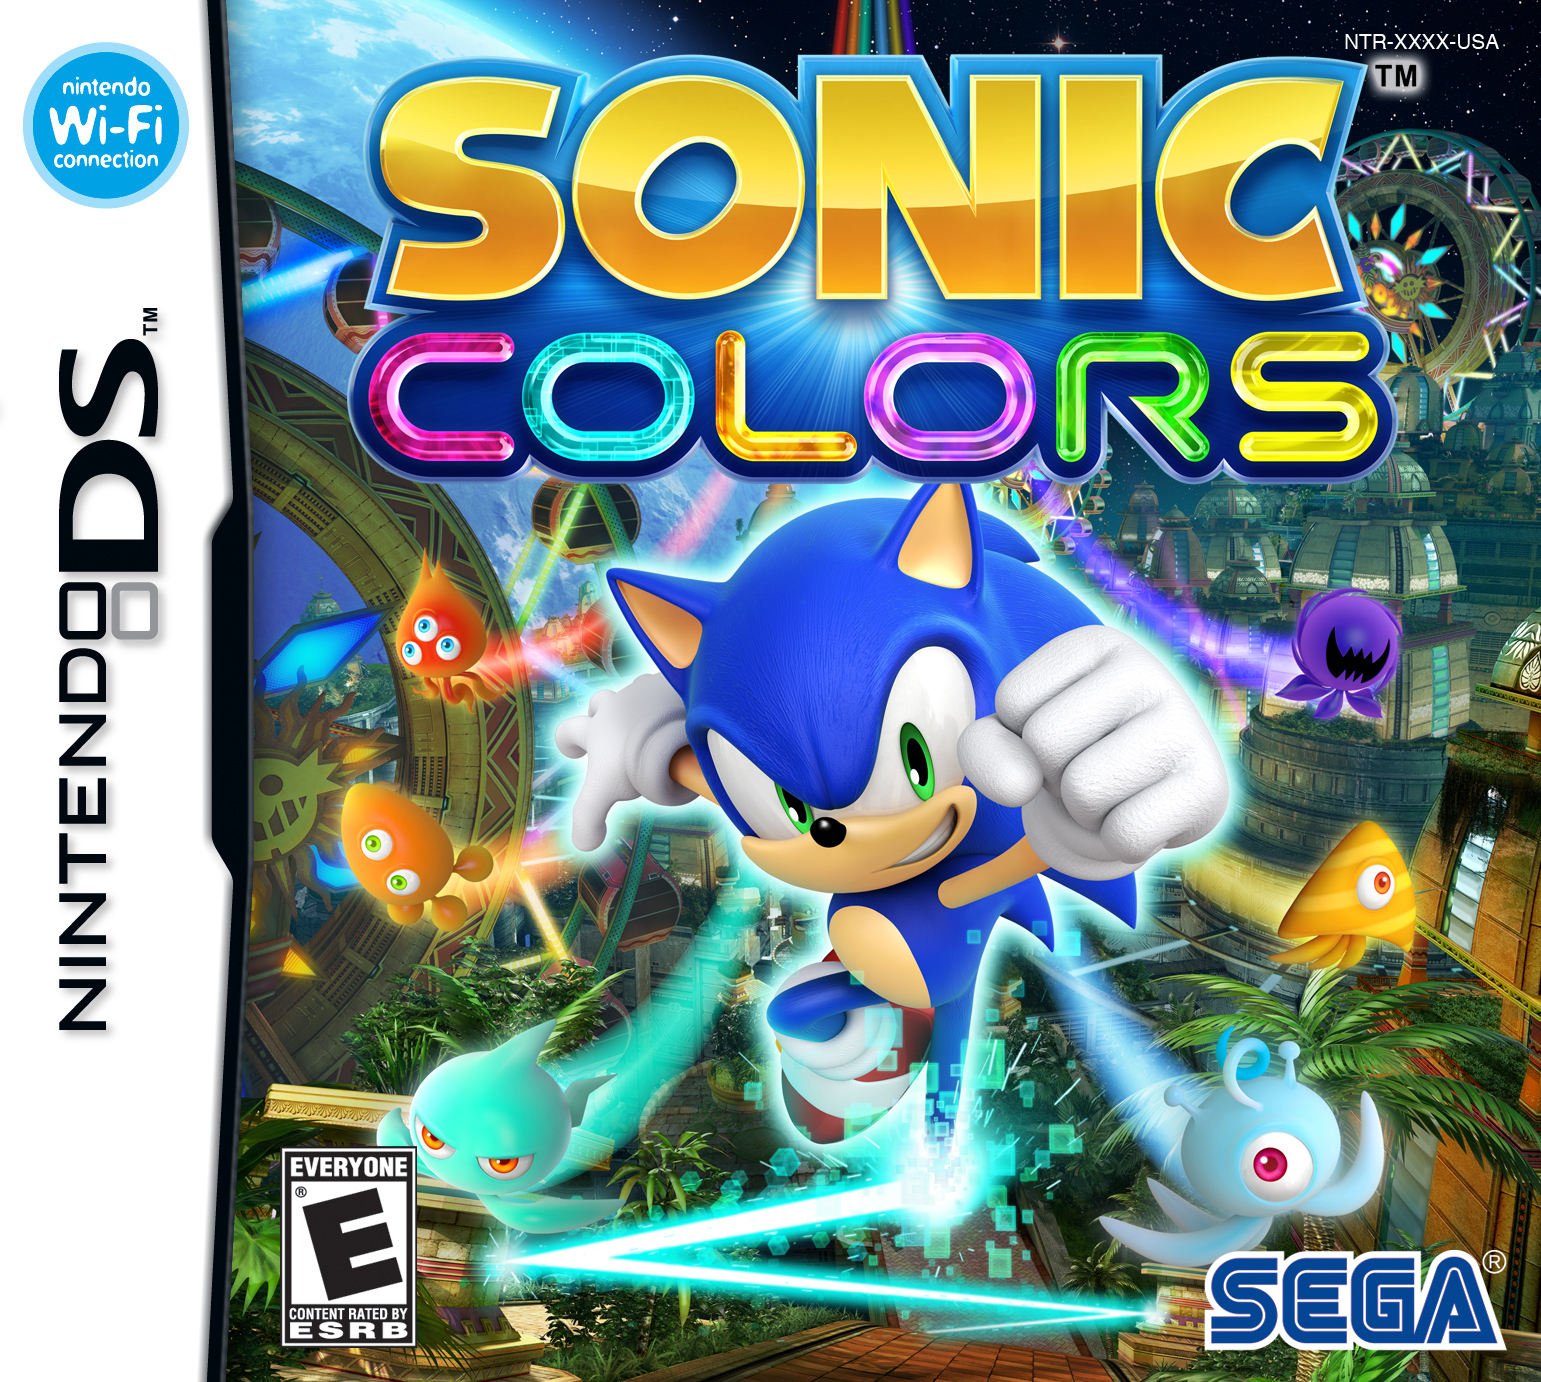 Sonic the Hedgehog Sonic Colors Wii and DS Box Art